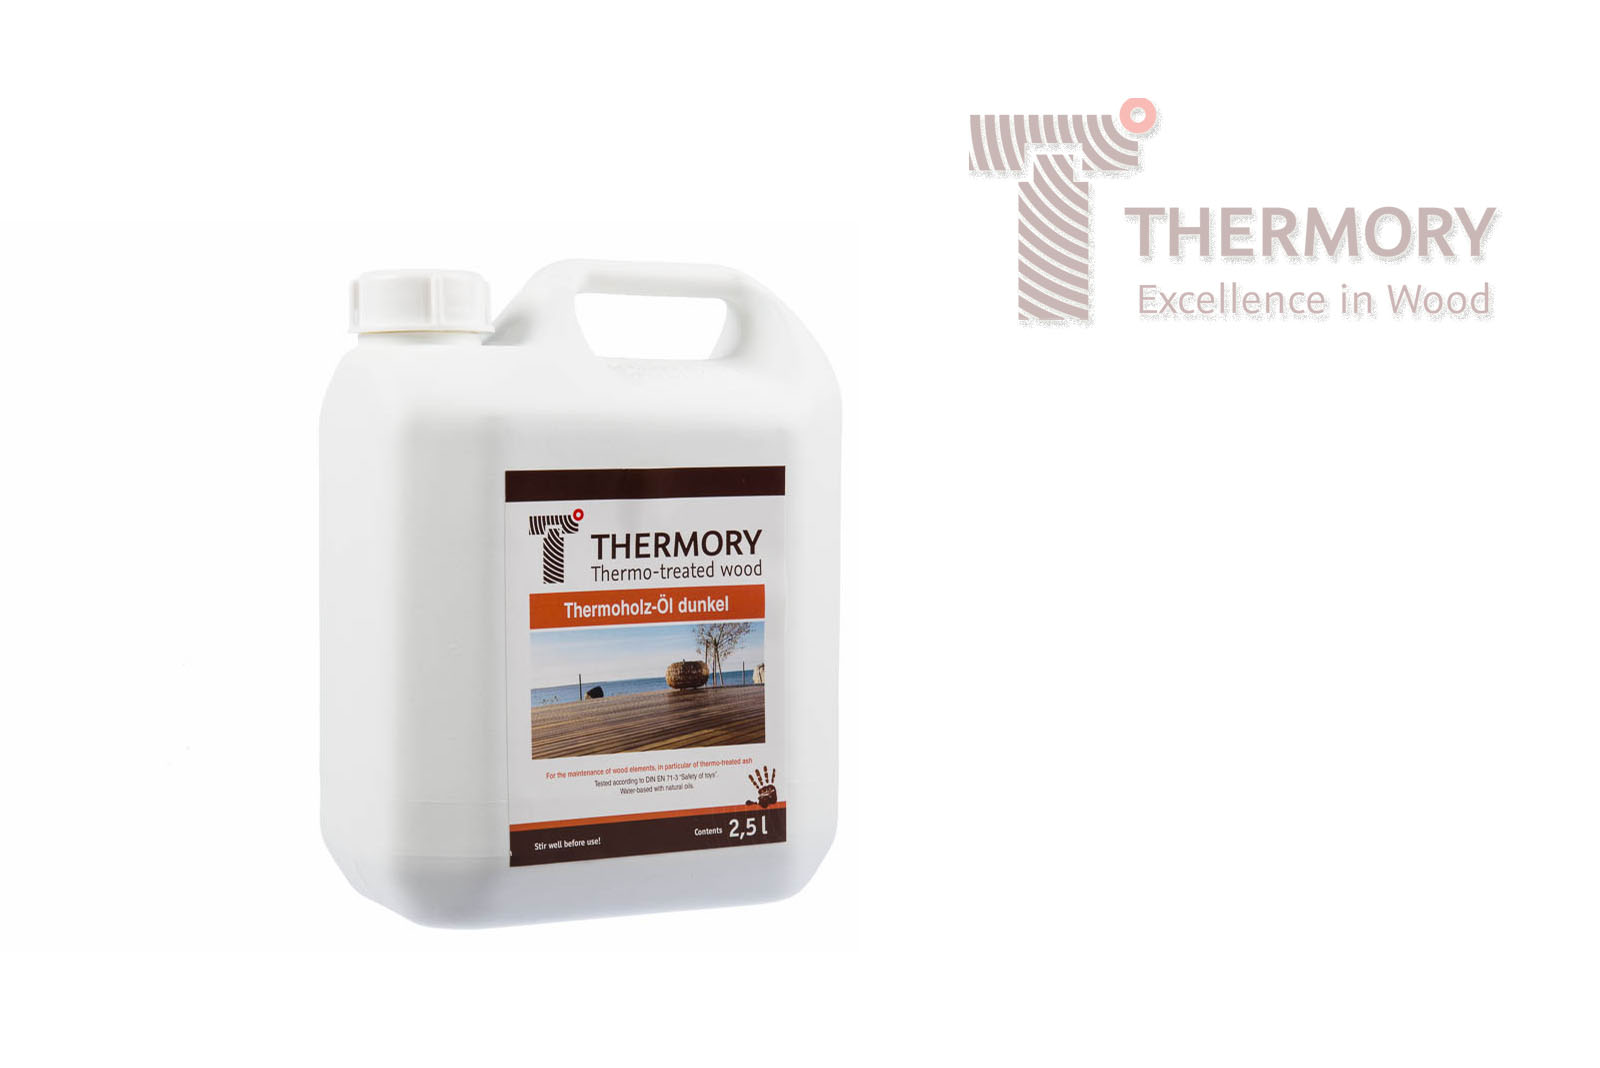 Wood Oil & End Sealer - Thermory® Thermo-Wood OilProduct InformationWater based blend of natural oilsWeather resistantDesigned for use with thermo-treated timberCoverage: Approx. 30/m2 tub (1 Coat)Available in dark pigment and natural shadesProvides a velvety coatingQuick dryingDeep penetratingFree of solvents/cobaltNo lamination or flaking riskTested to DIN EN 71-3 'Safety of Toys' Directive